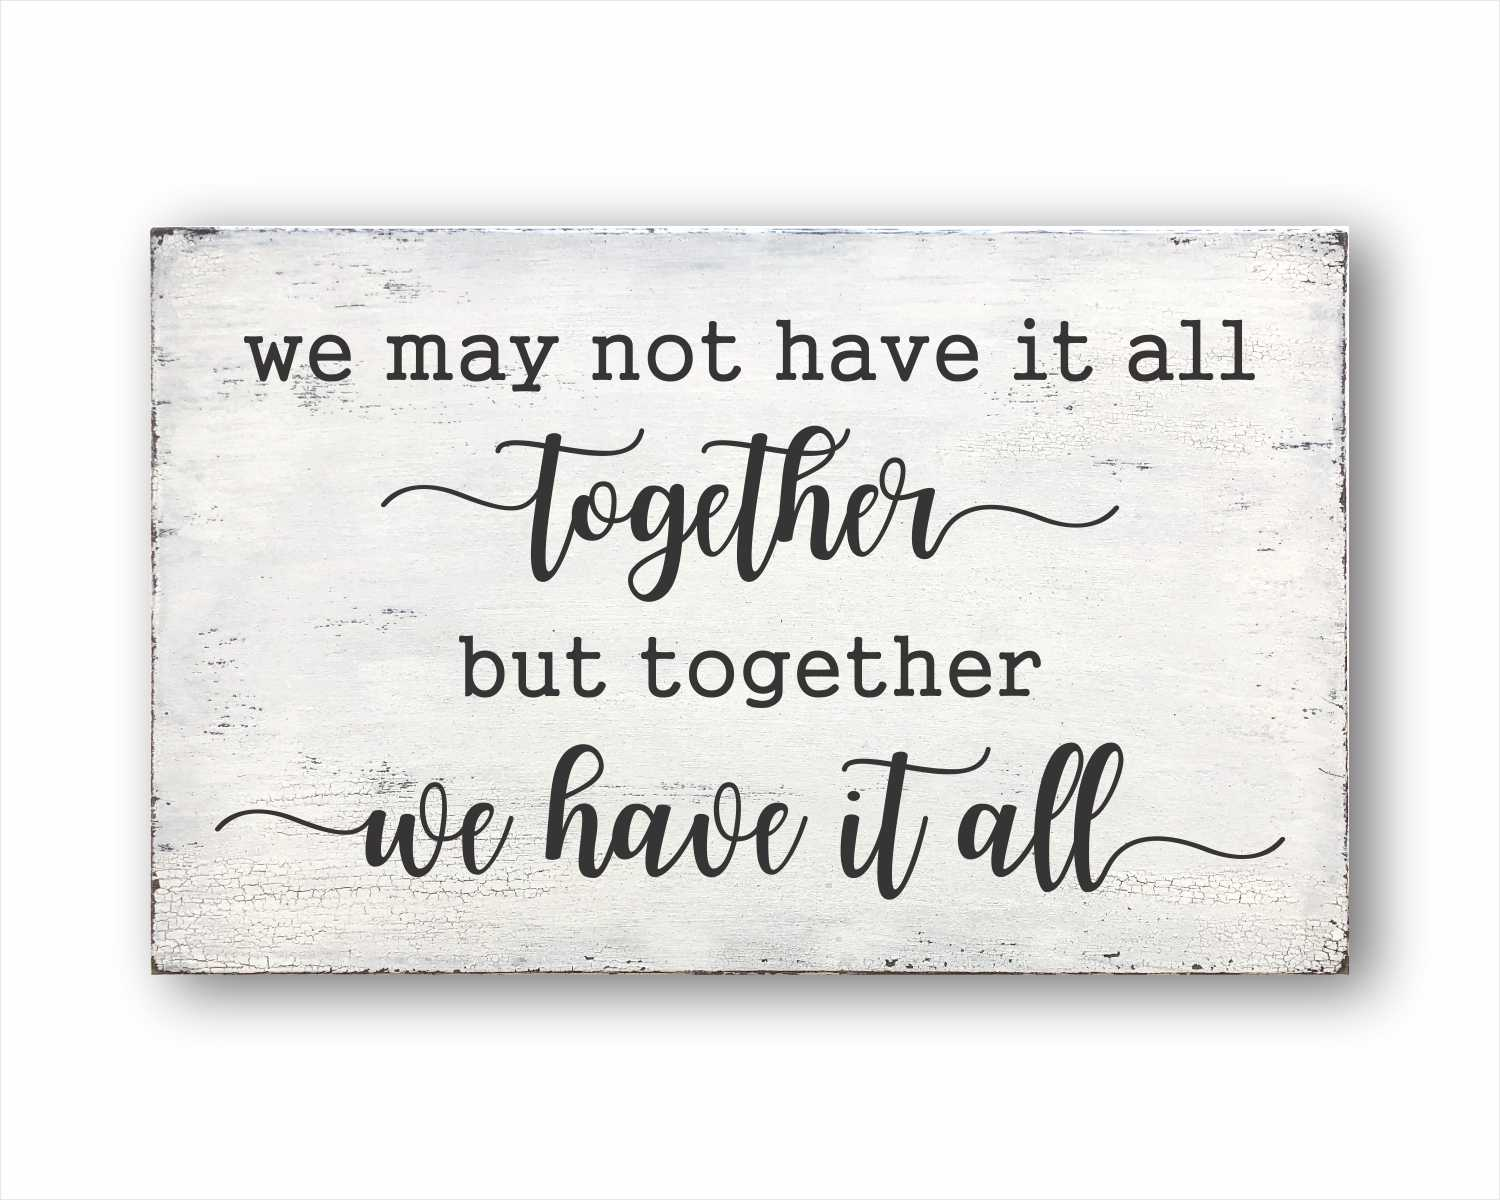 We May Not Have It All Together But Together We Have It All: Rustic Rectangular Wood Sign